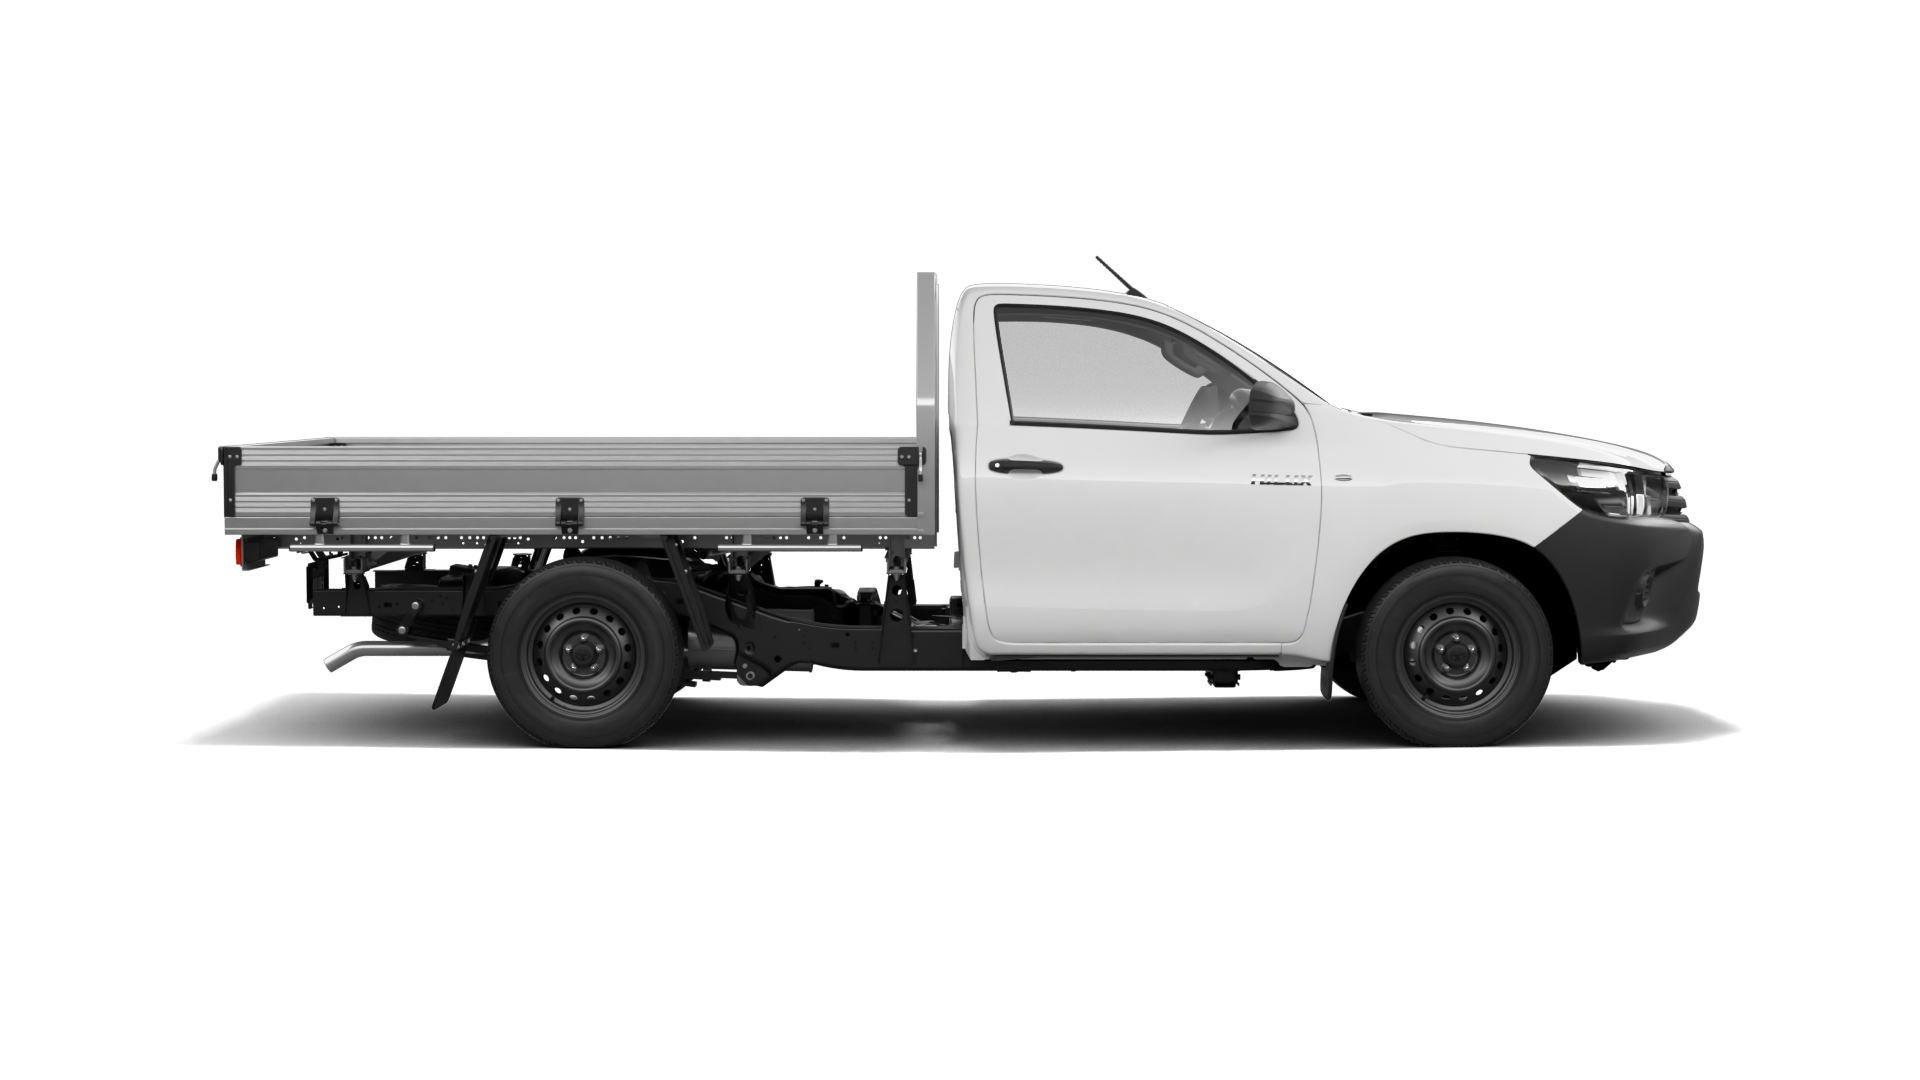 The Toyota HiLux WorkMate 4x2 is available now at Sunshine Toyota on the Sunshine Coast! Book a test drive today!